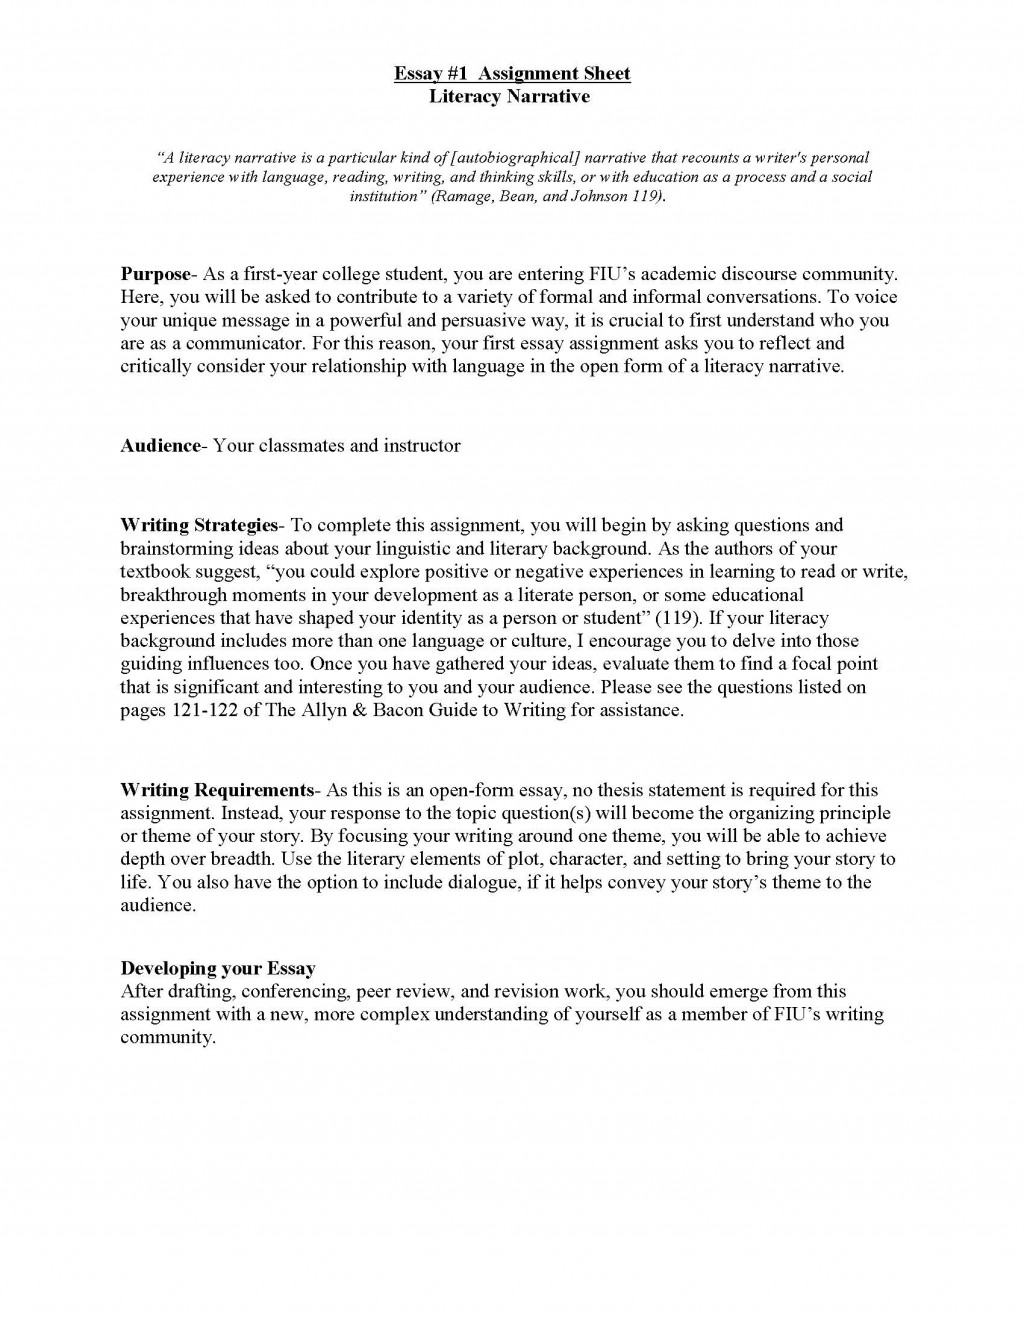 002 Essay Example Literacy Narrative Unit Assignment Spring 2012 Page 1 Awful Information Topics Titles Media Examples Large